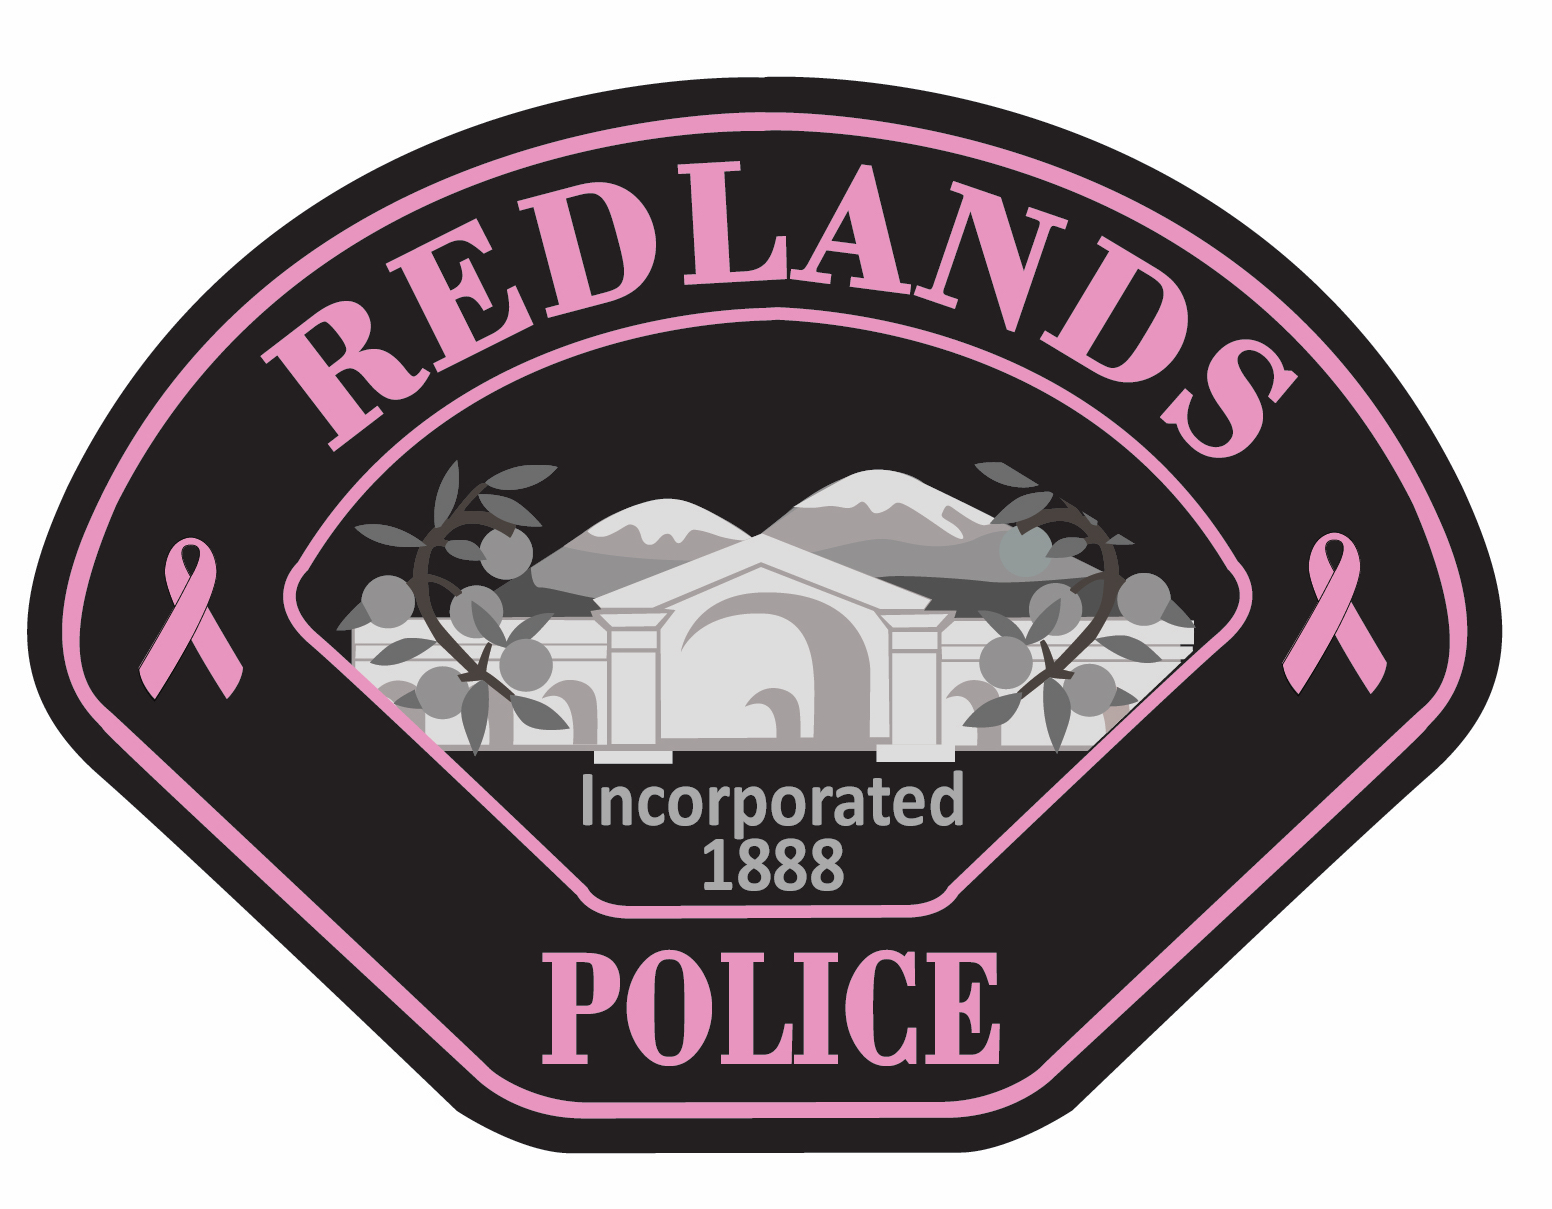 Redlands patch 6-20-17.jpg